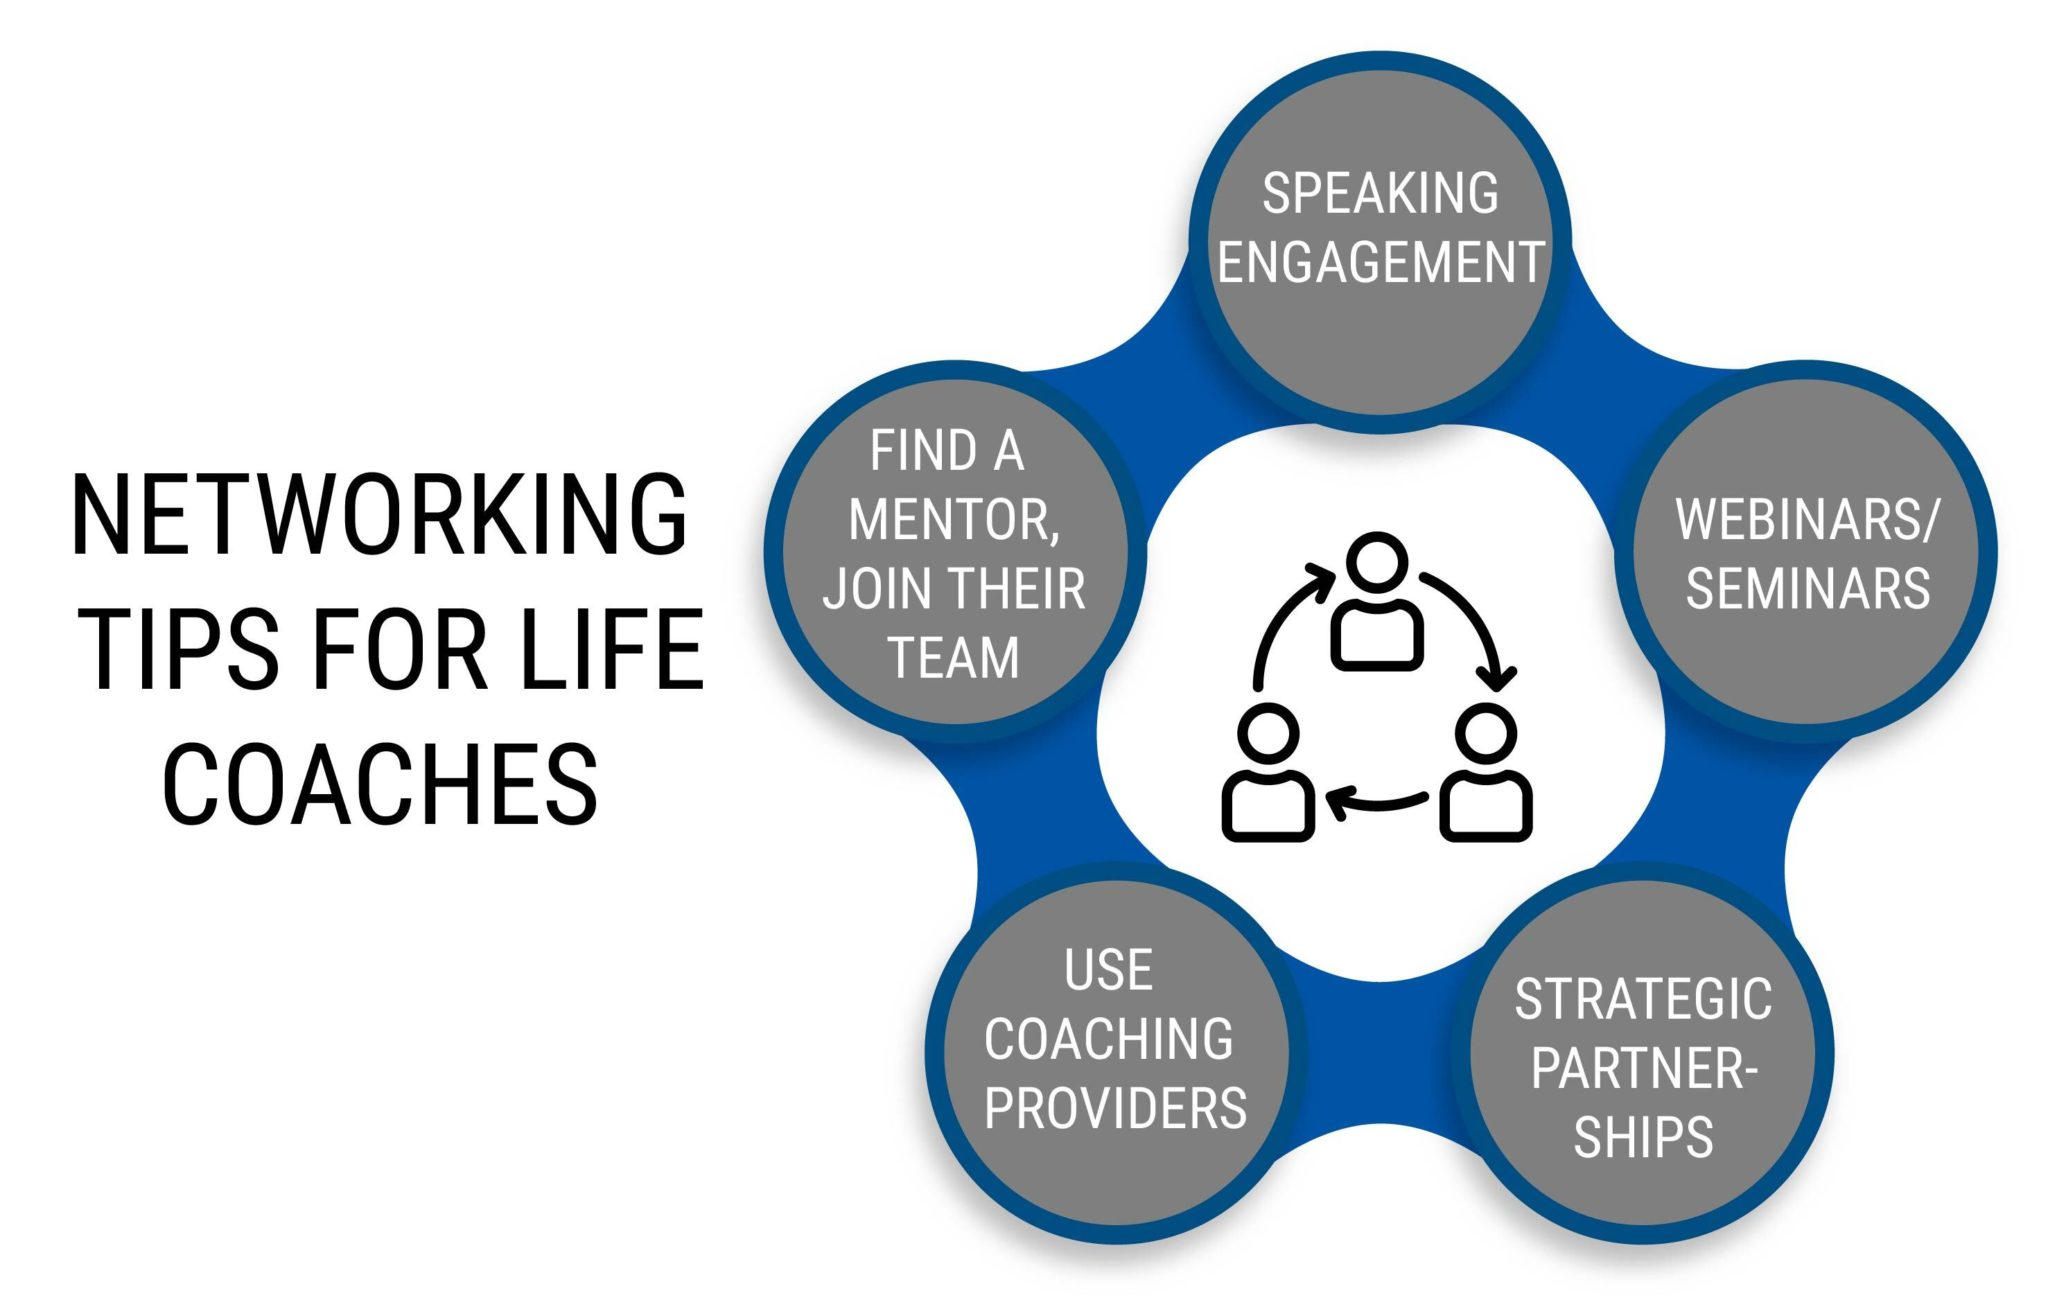 NETWORKING TIPS FOR LIFE COACHES